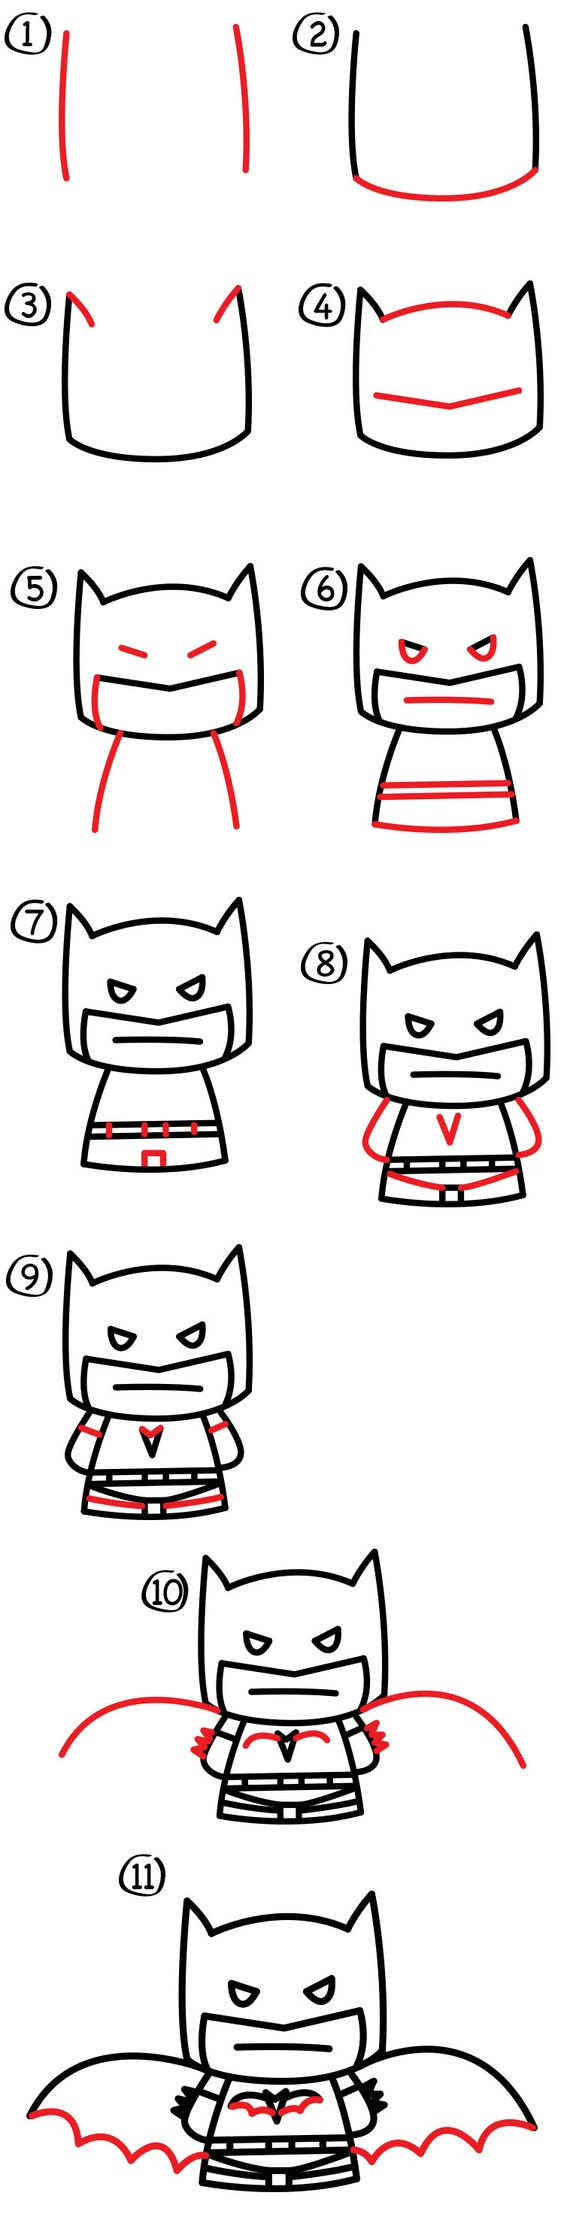 How to draw batman easy drawingnow - The 25 Best How To Draw Batman Ideas On Pinterest Lego Batman How To Draw Superman And Simple Drawings For Kids